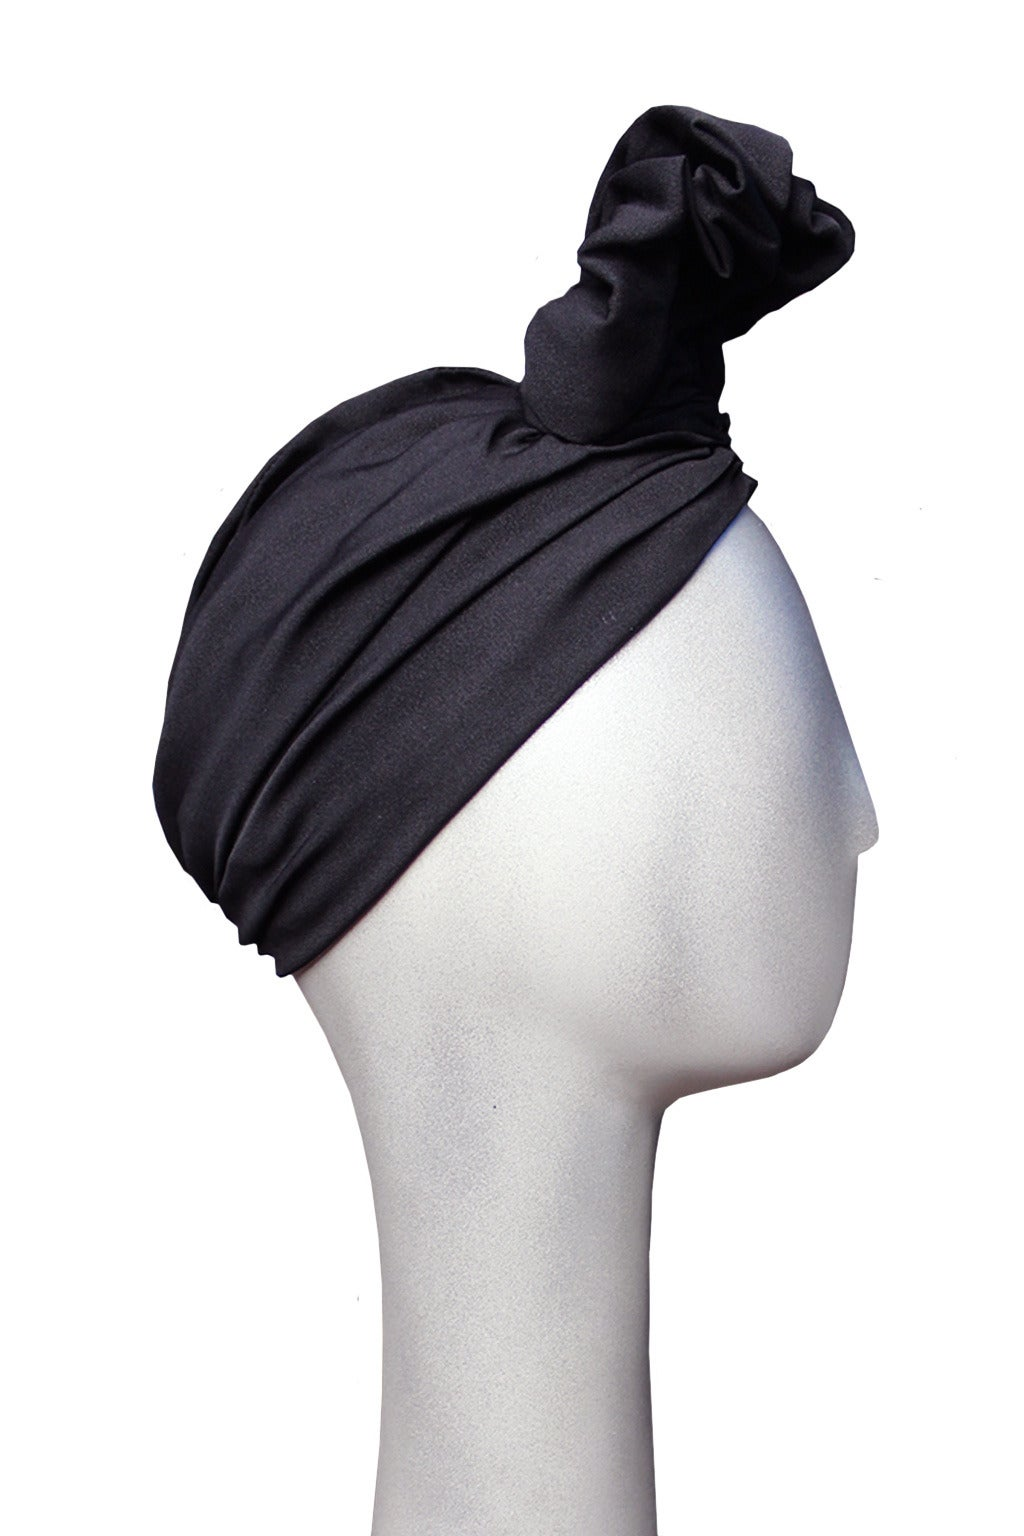 Norma Kamali 1970s Exaggerated Turban 2